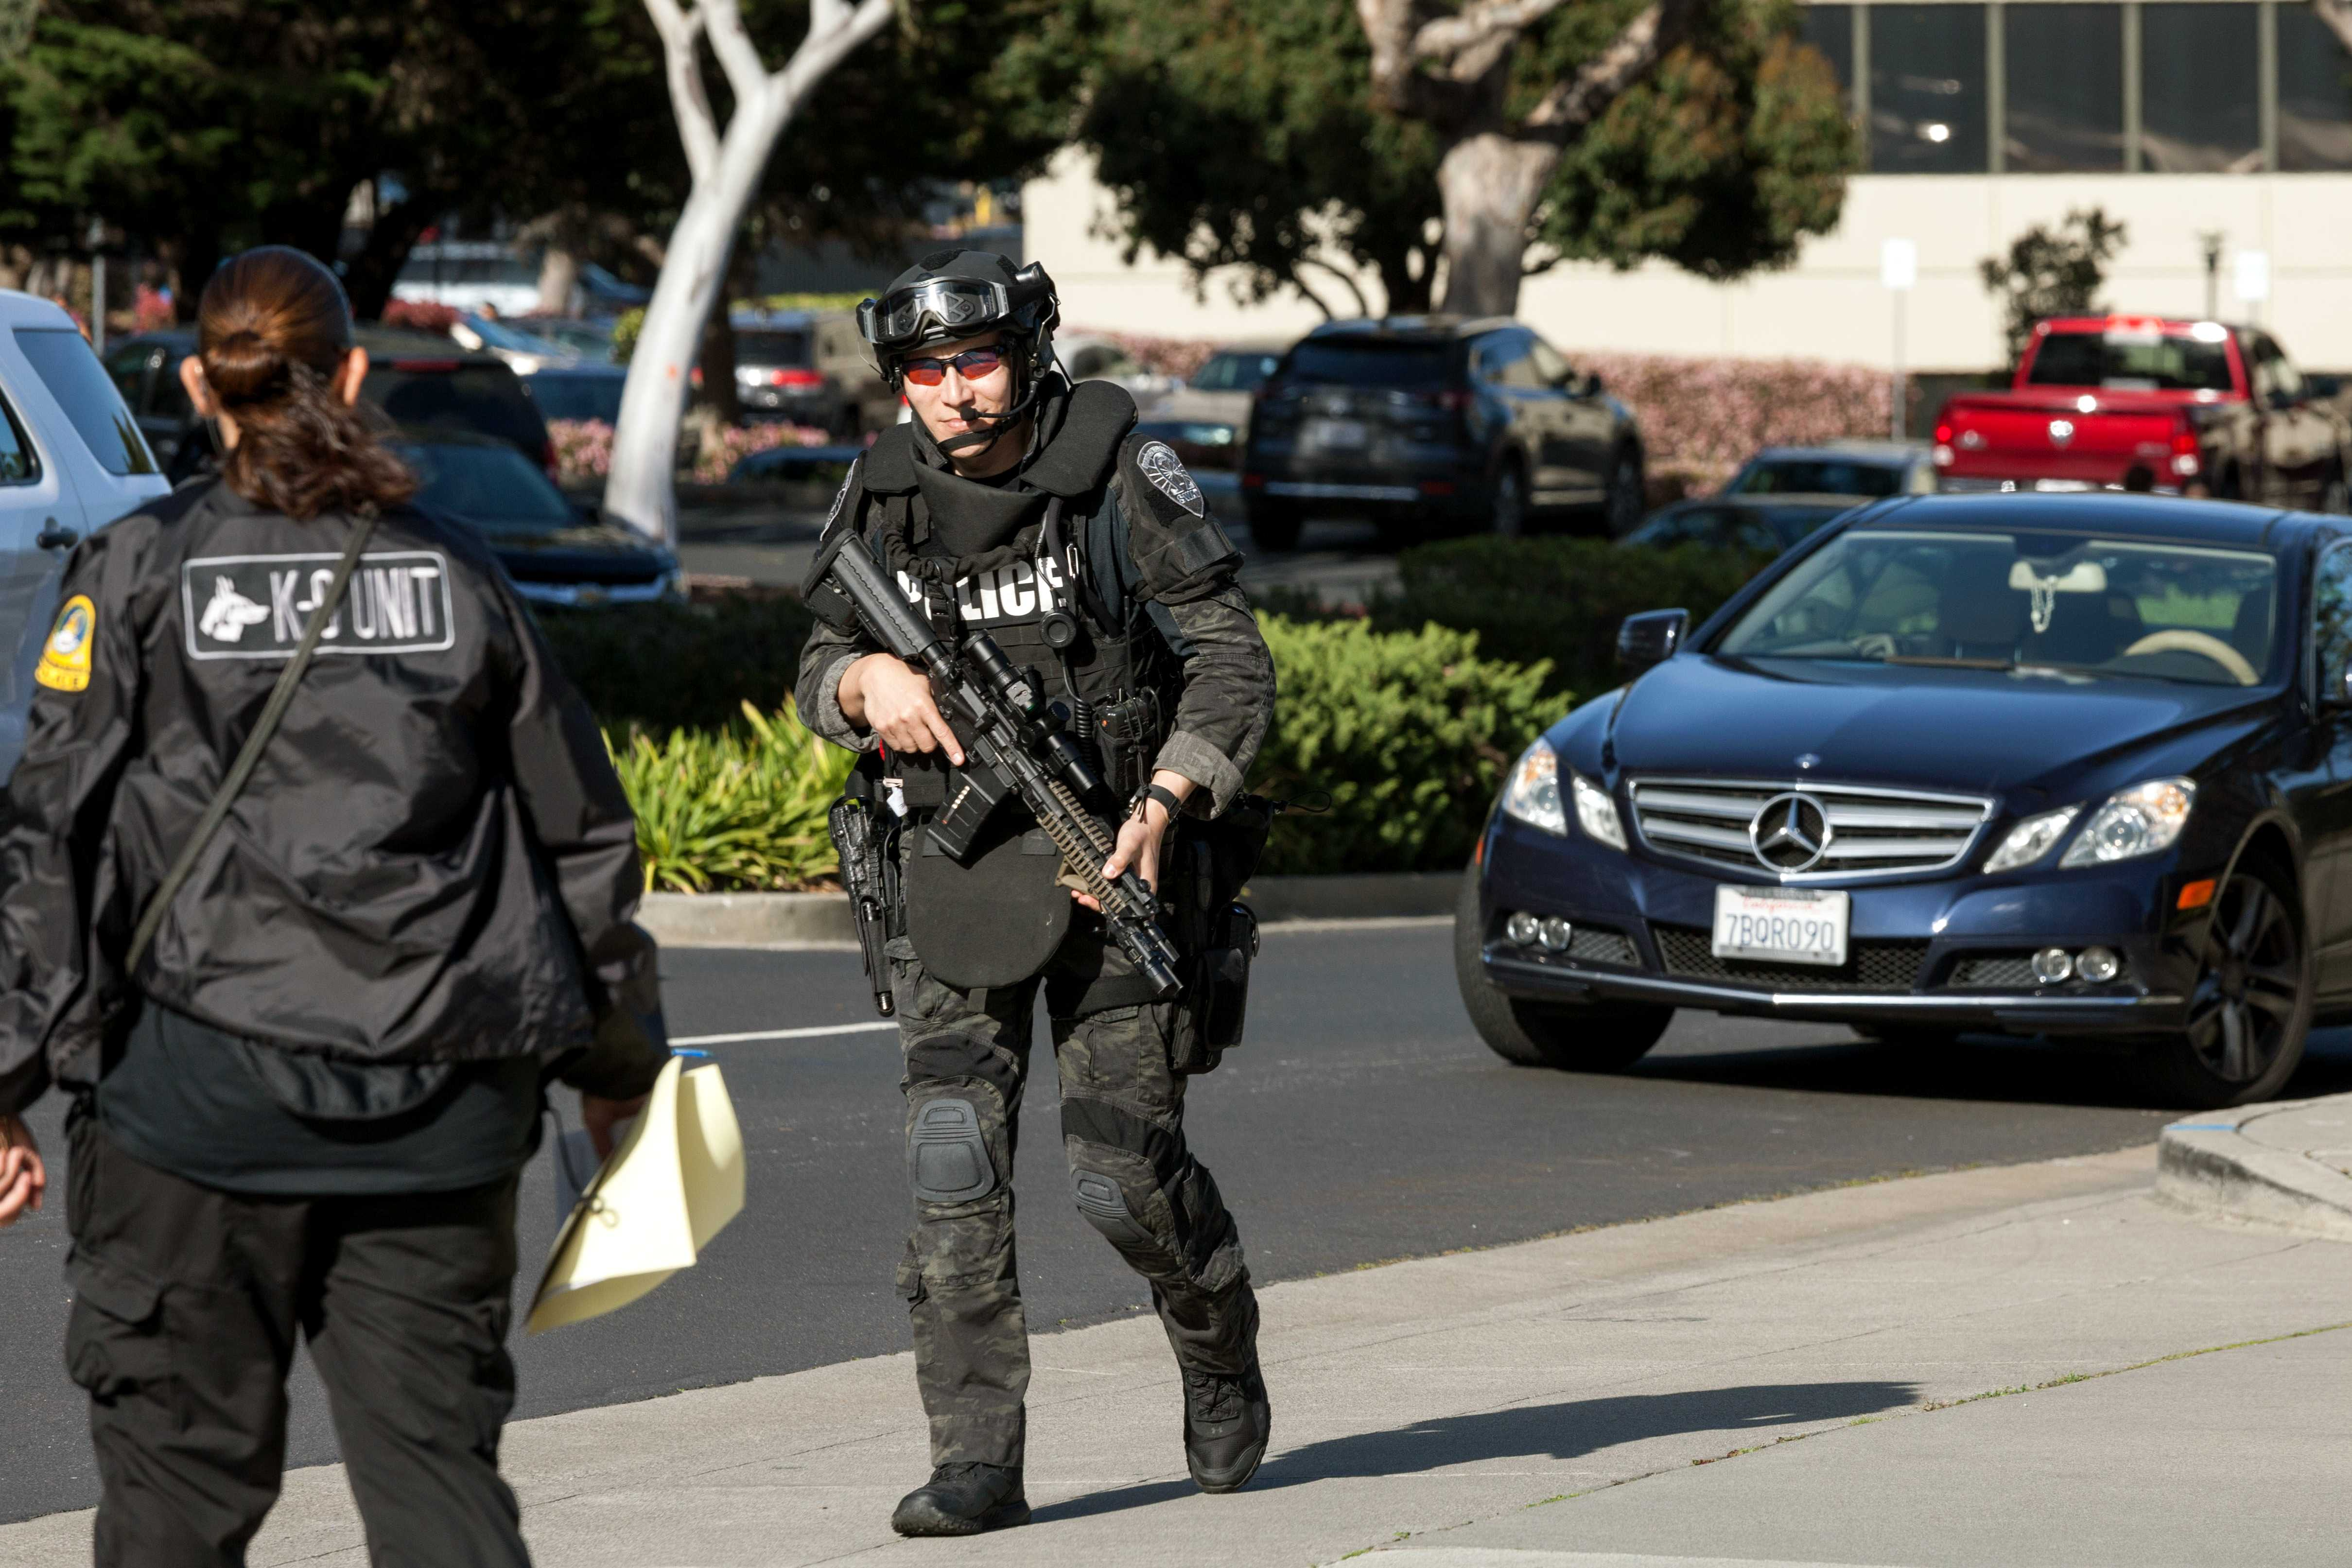 Woman shoots three and takes her own life at San Bruno YouTube campus